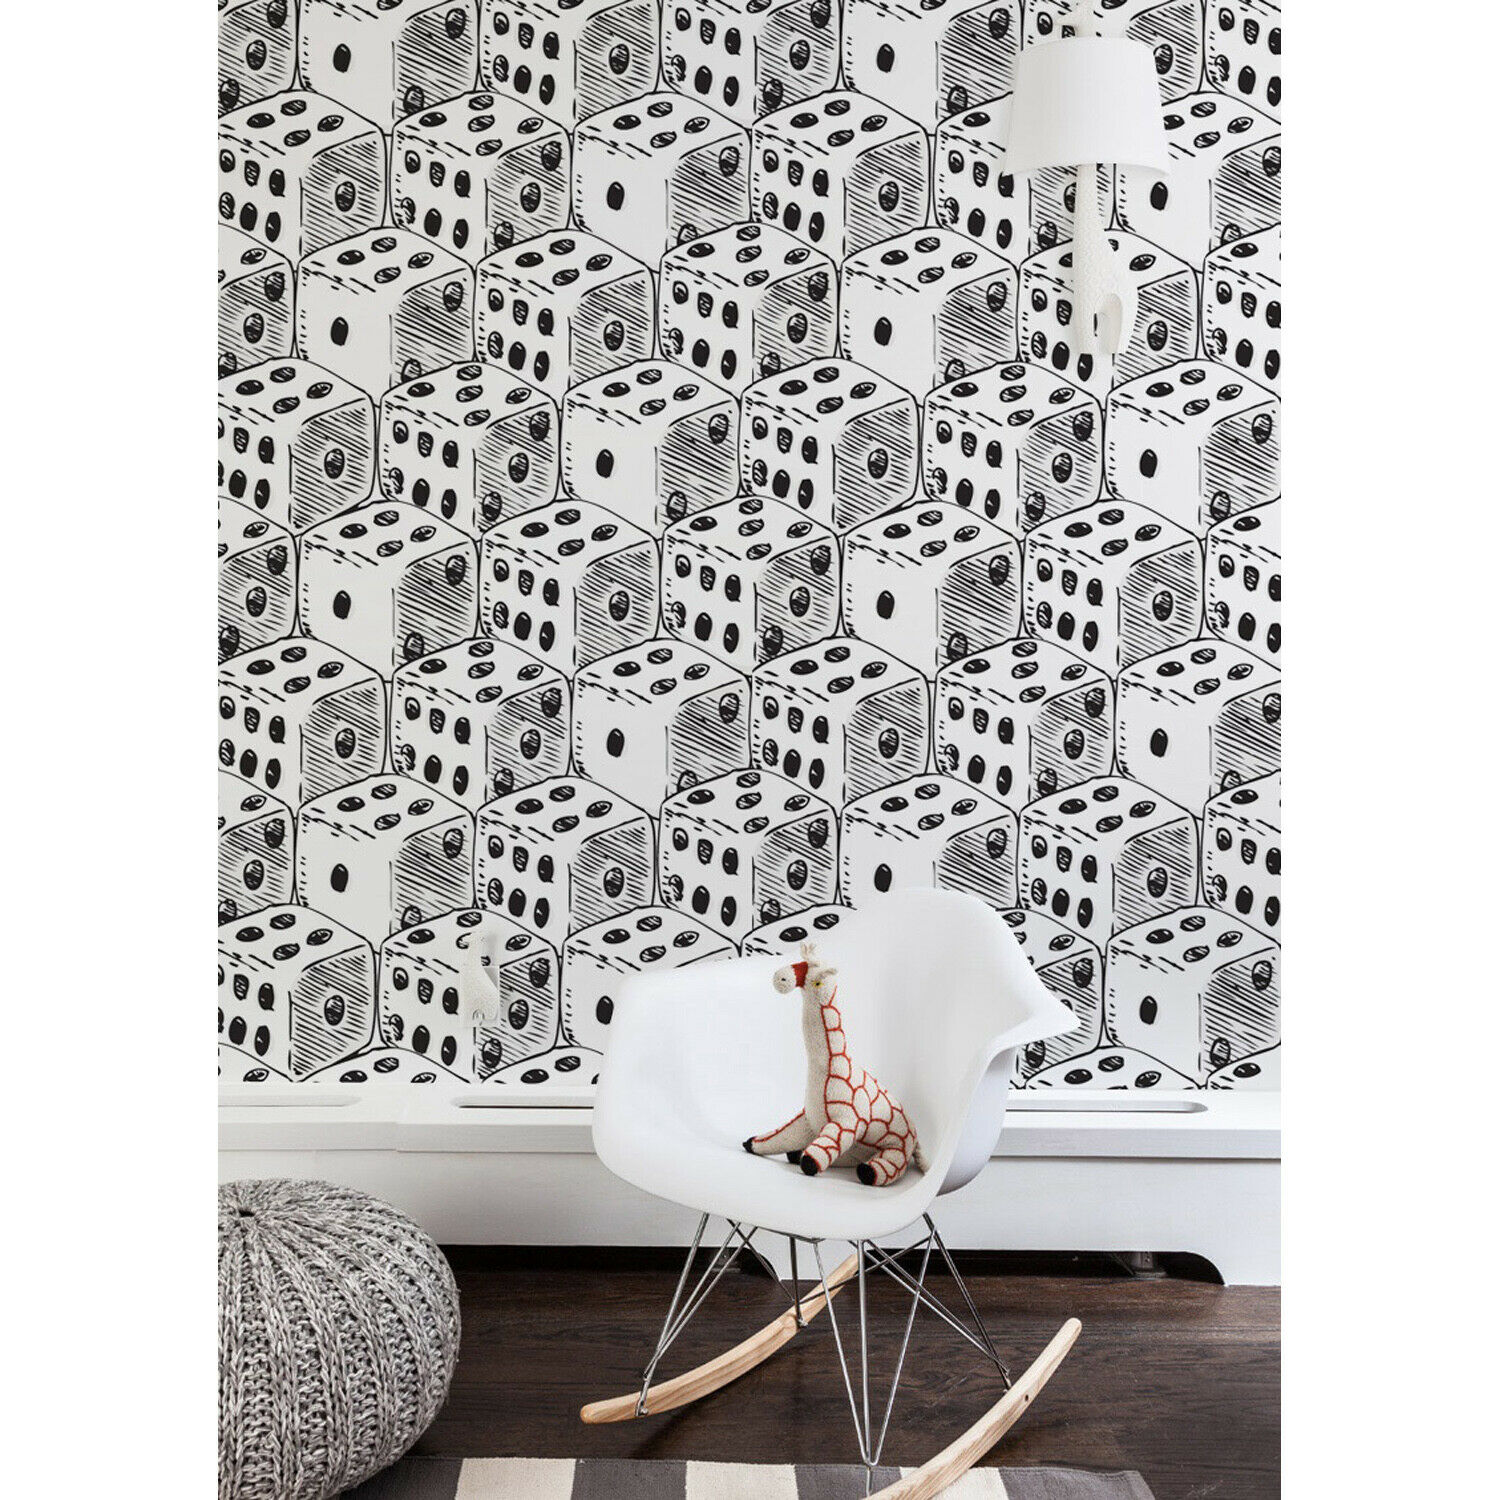 Dot Cubes vintage retro nursery decal large wall mural adhesive white